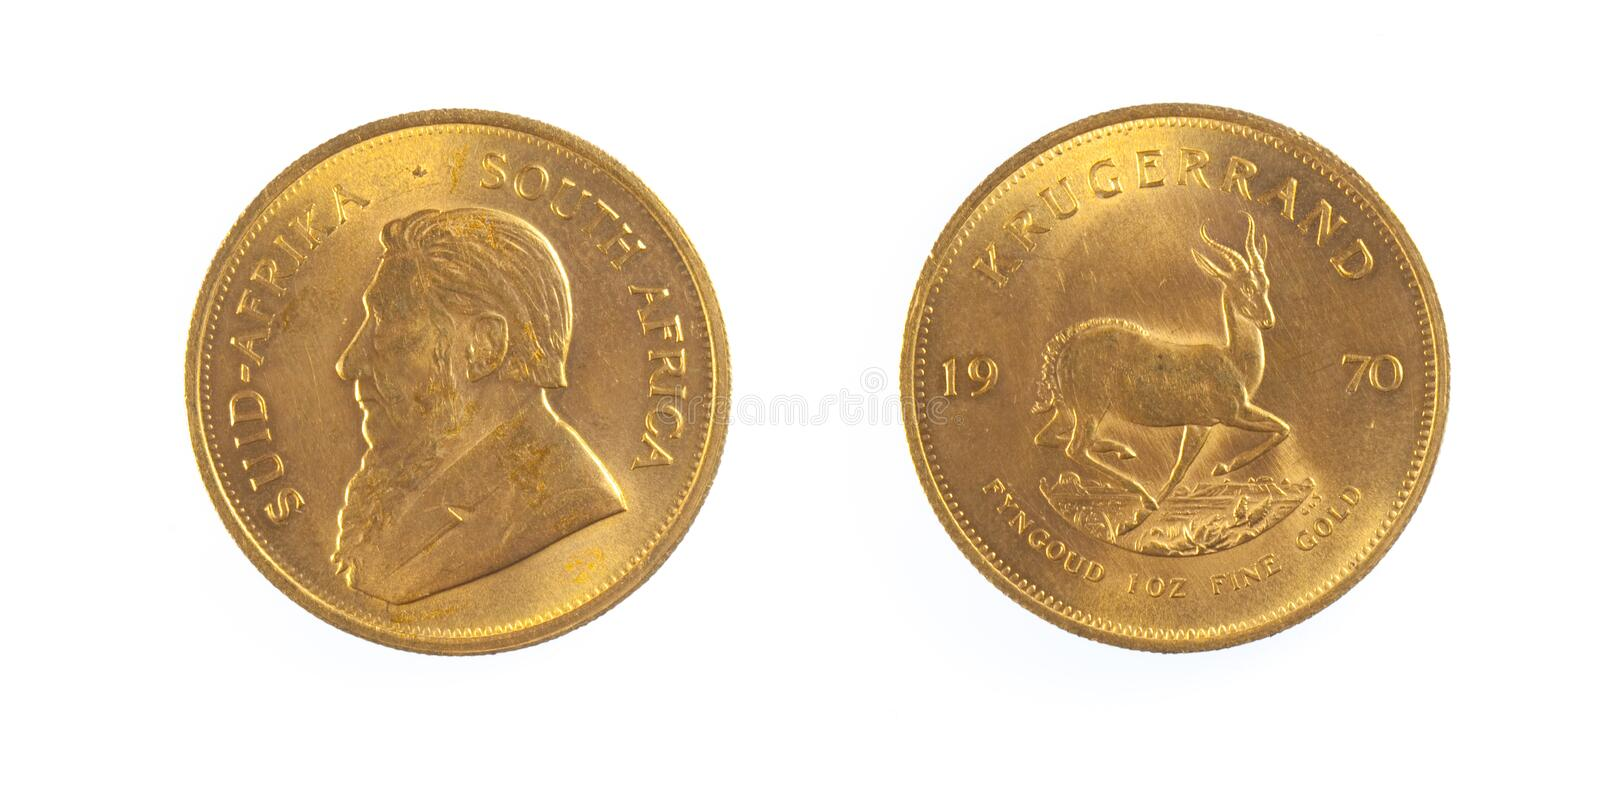 Gold coin of South Africa. Front and back of fine gold, isolated on pure white background stock images